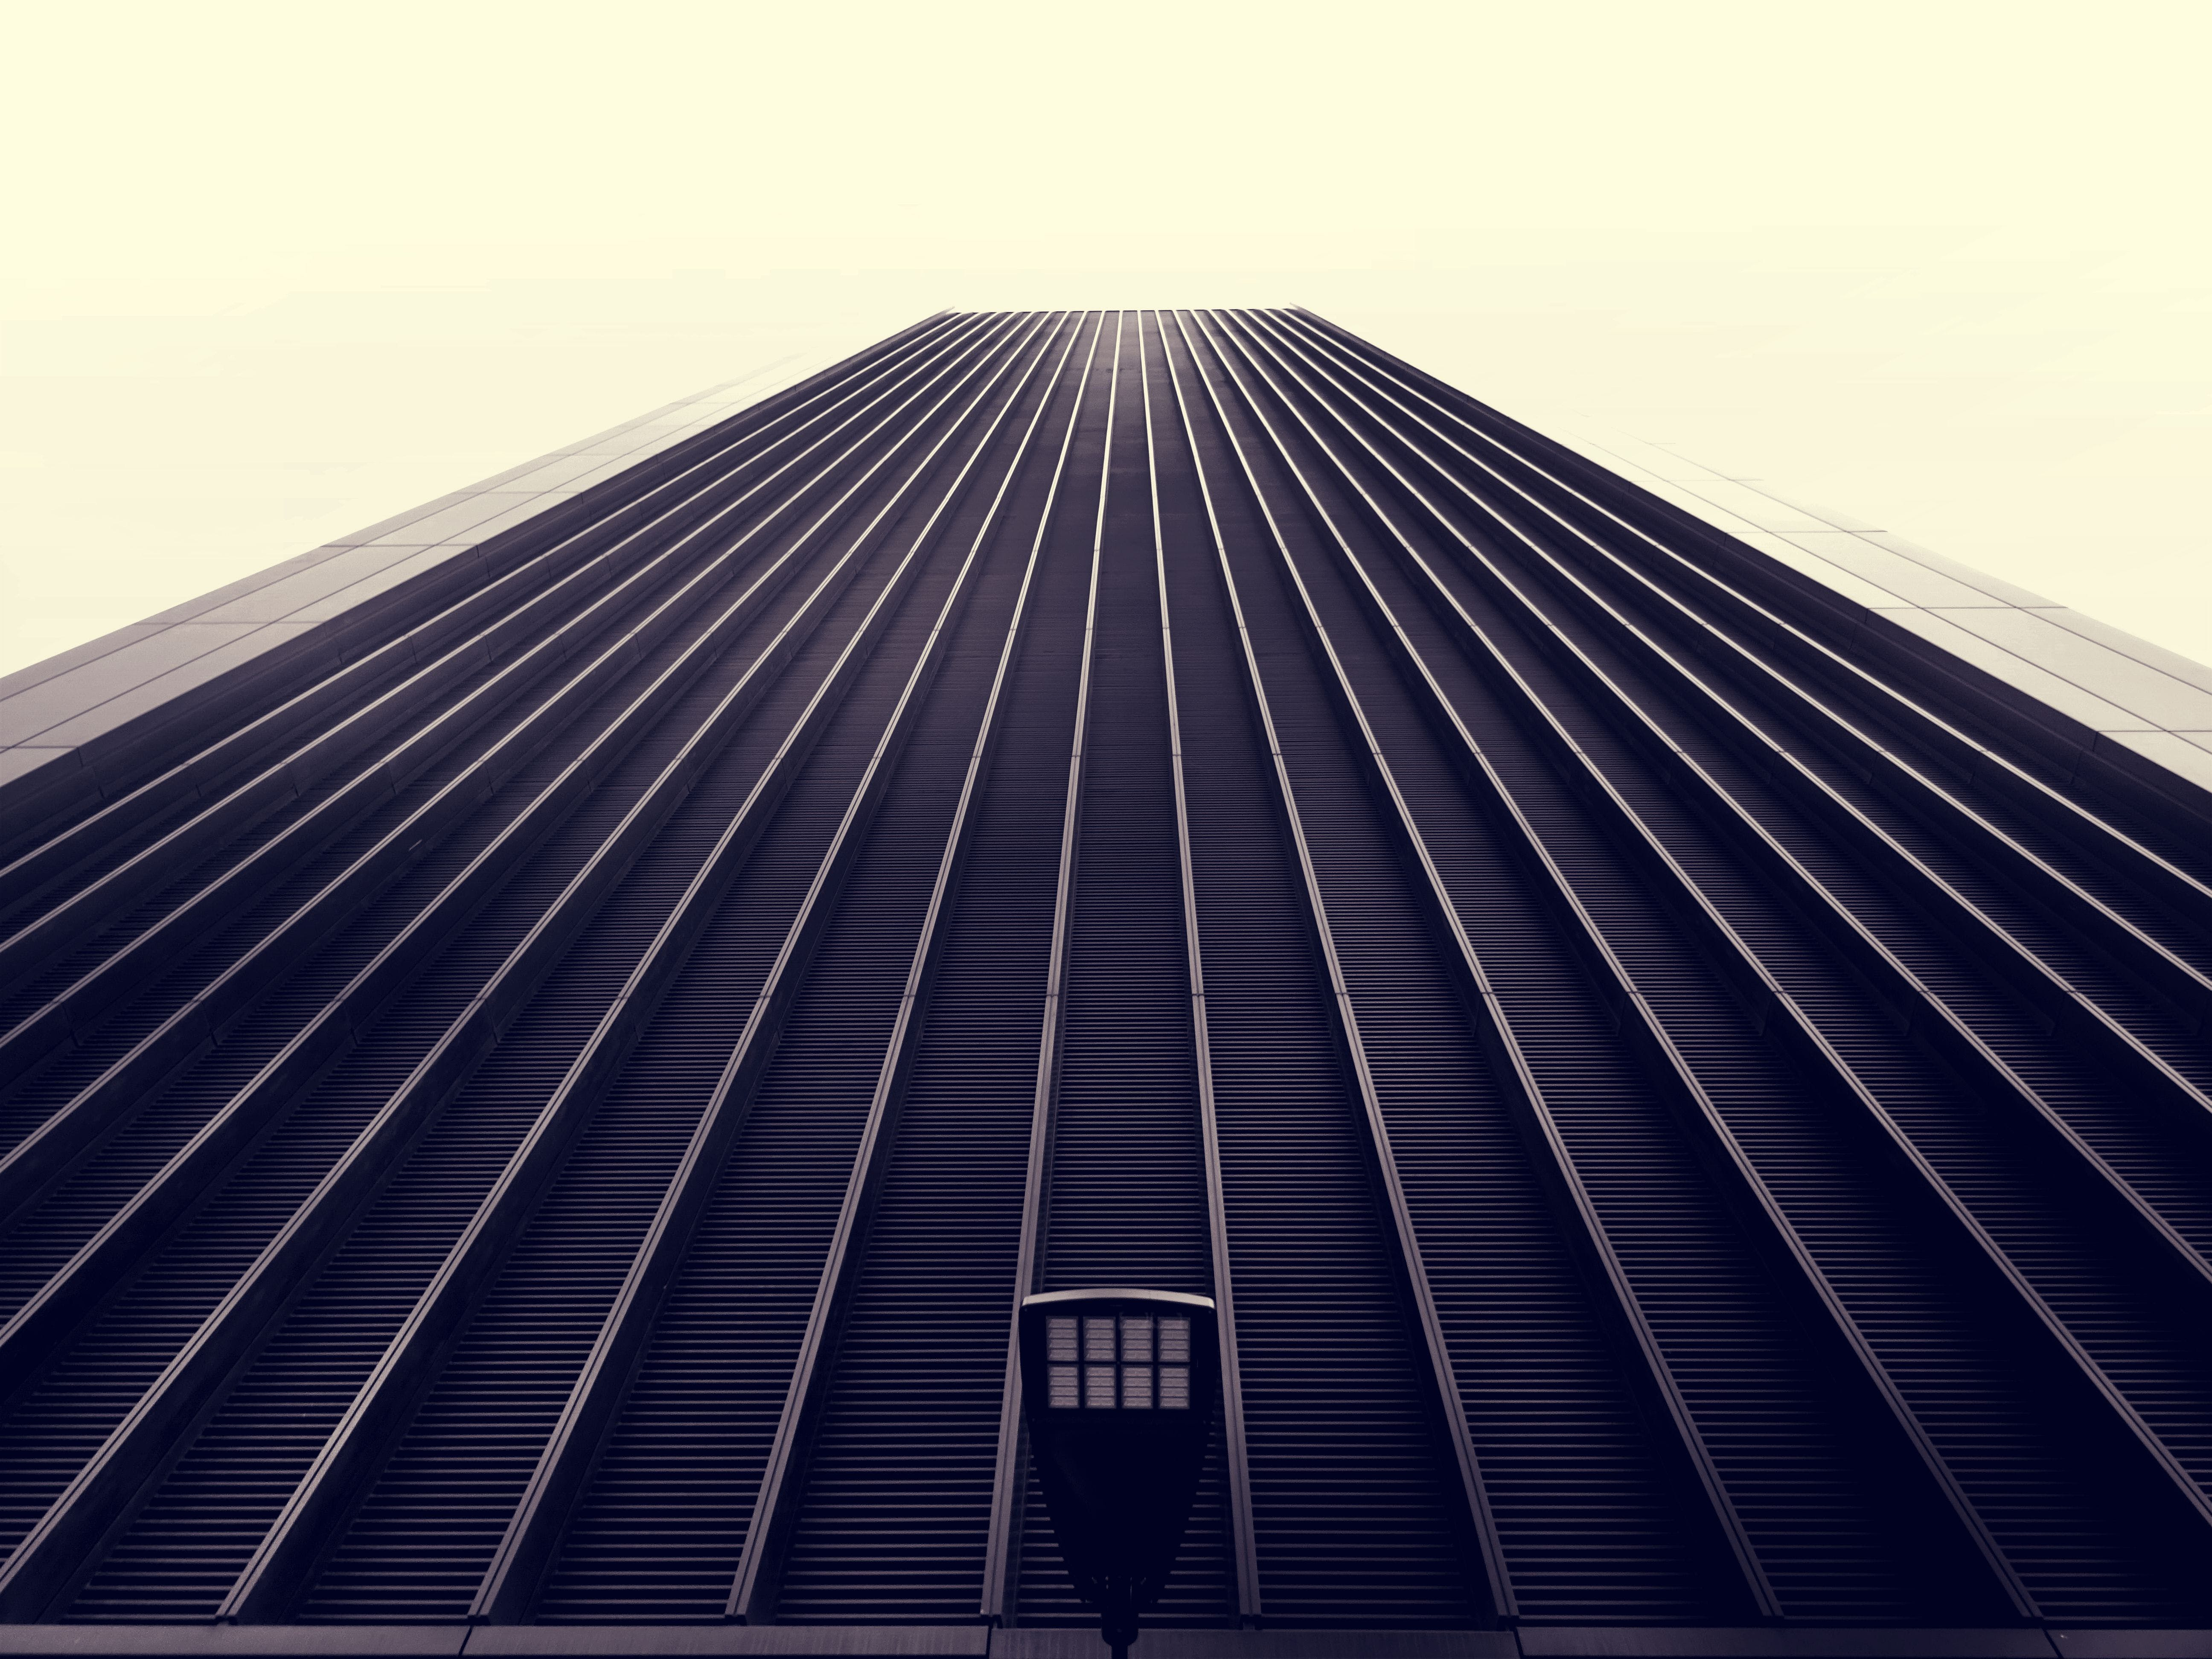 Worm's Eye View of Black Concrete Building